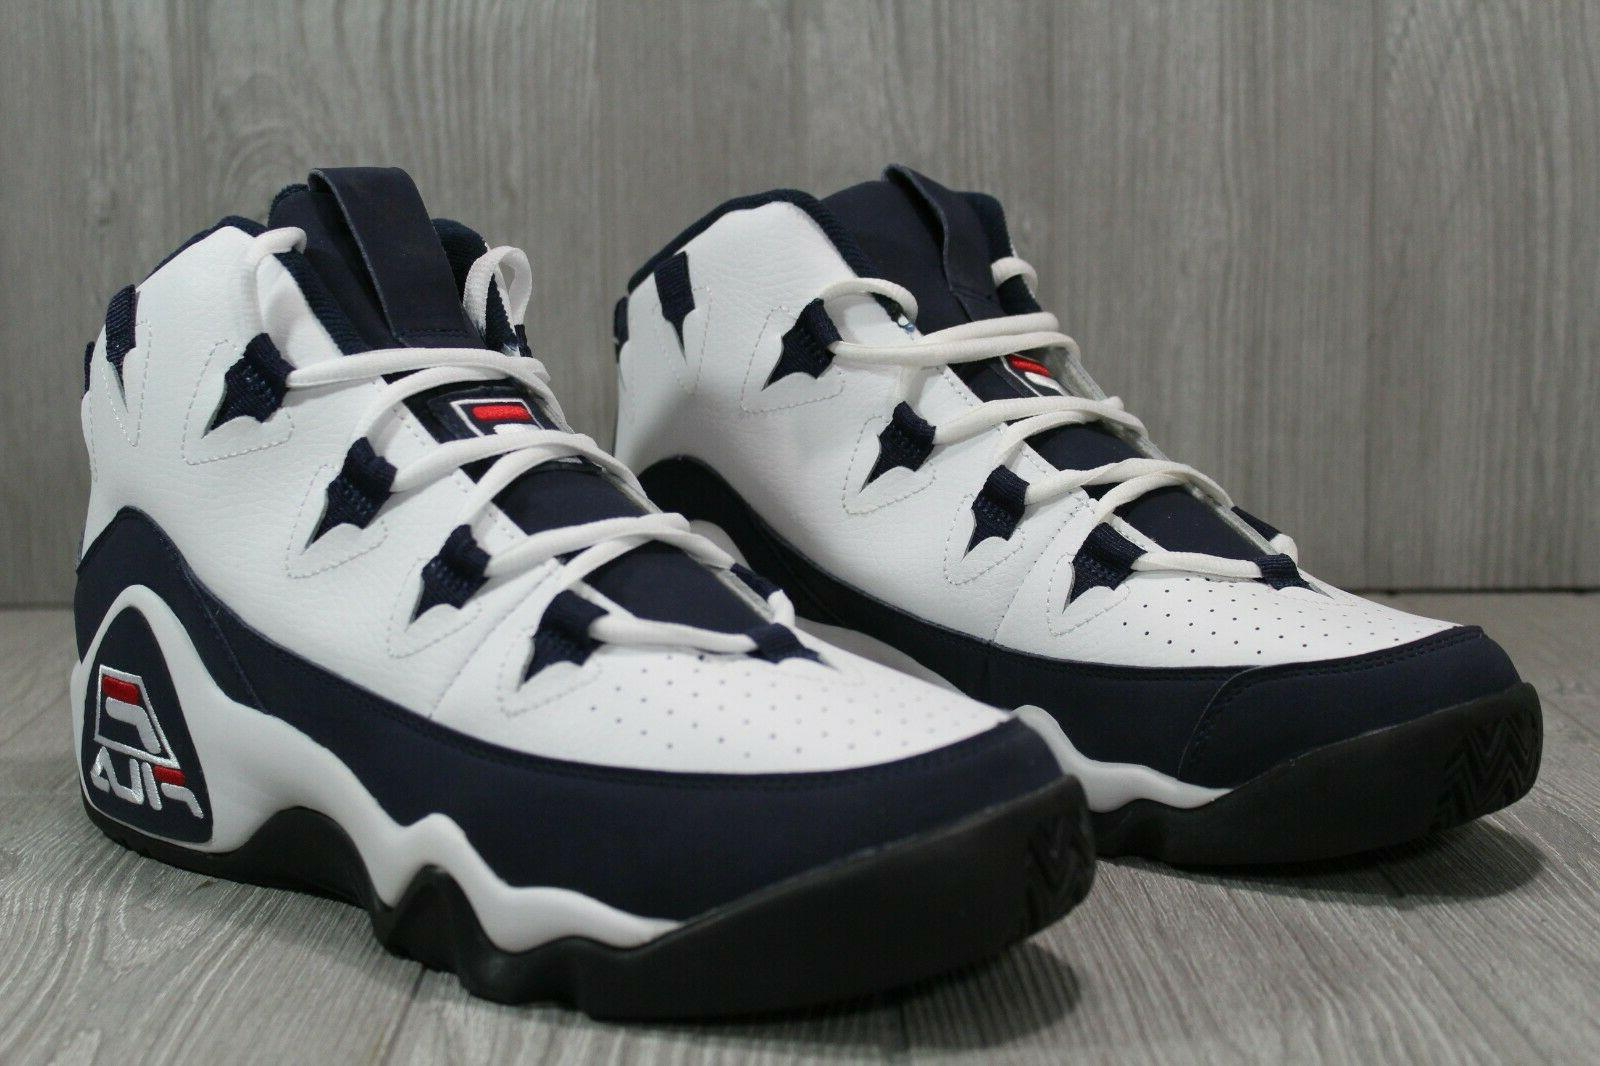 55 Fila 96 Basketball Shoes White Red